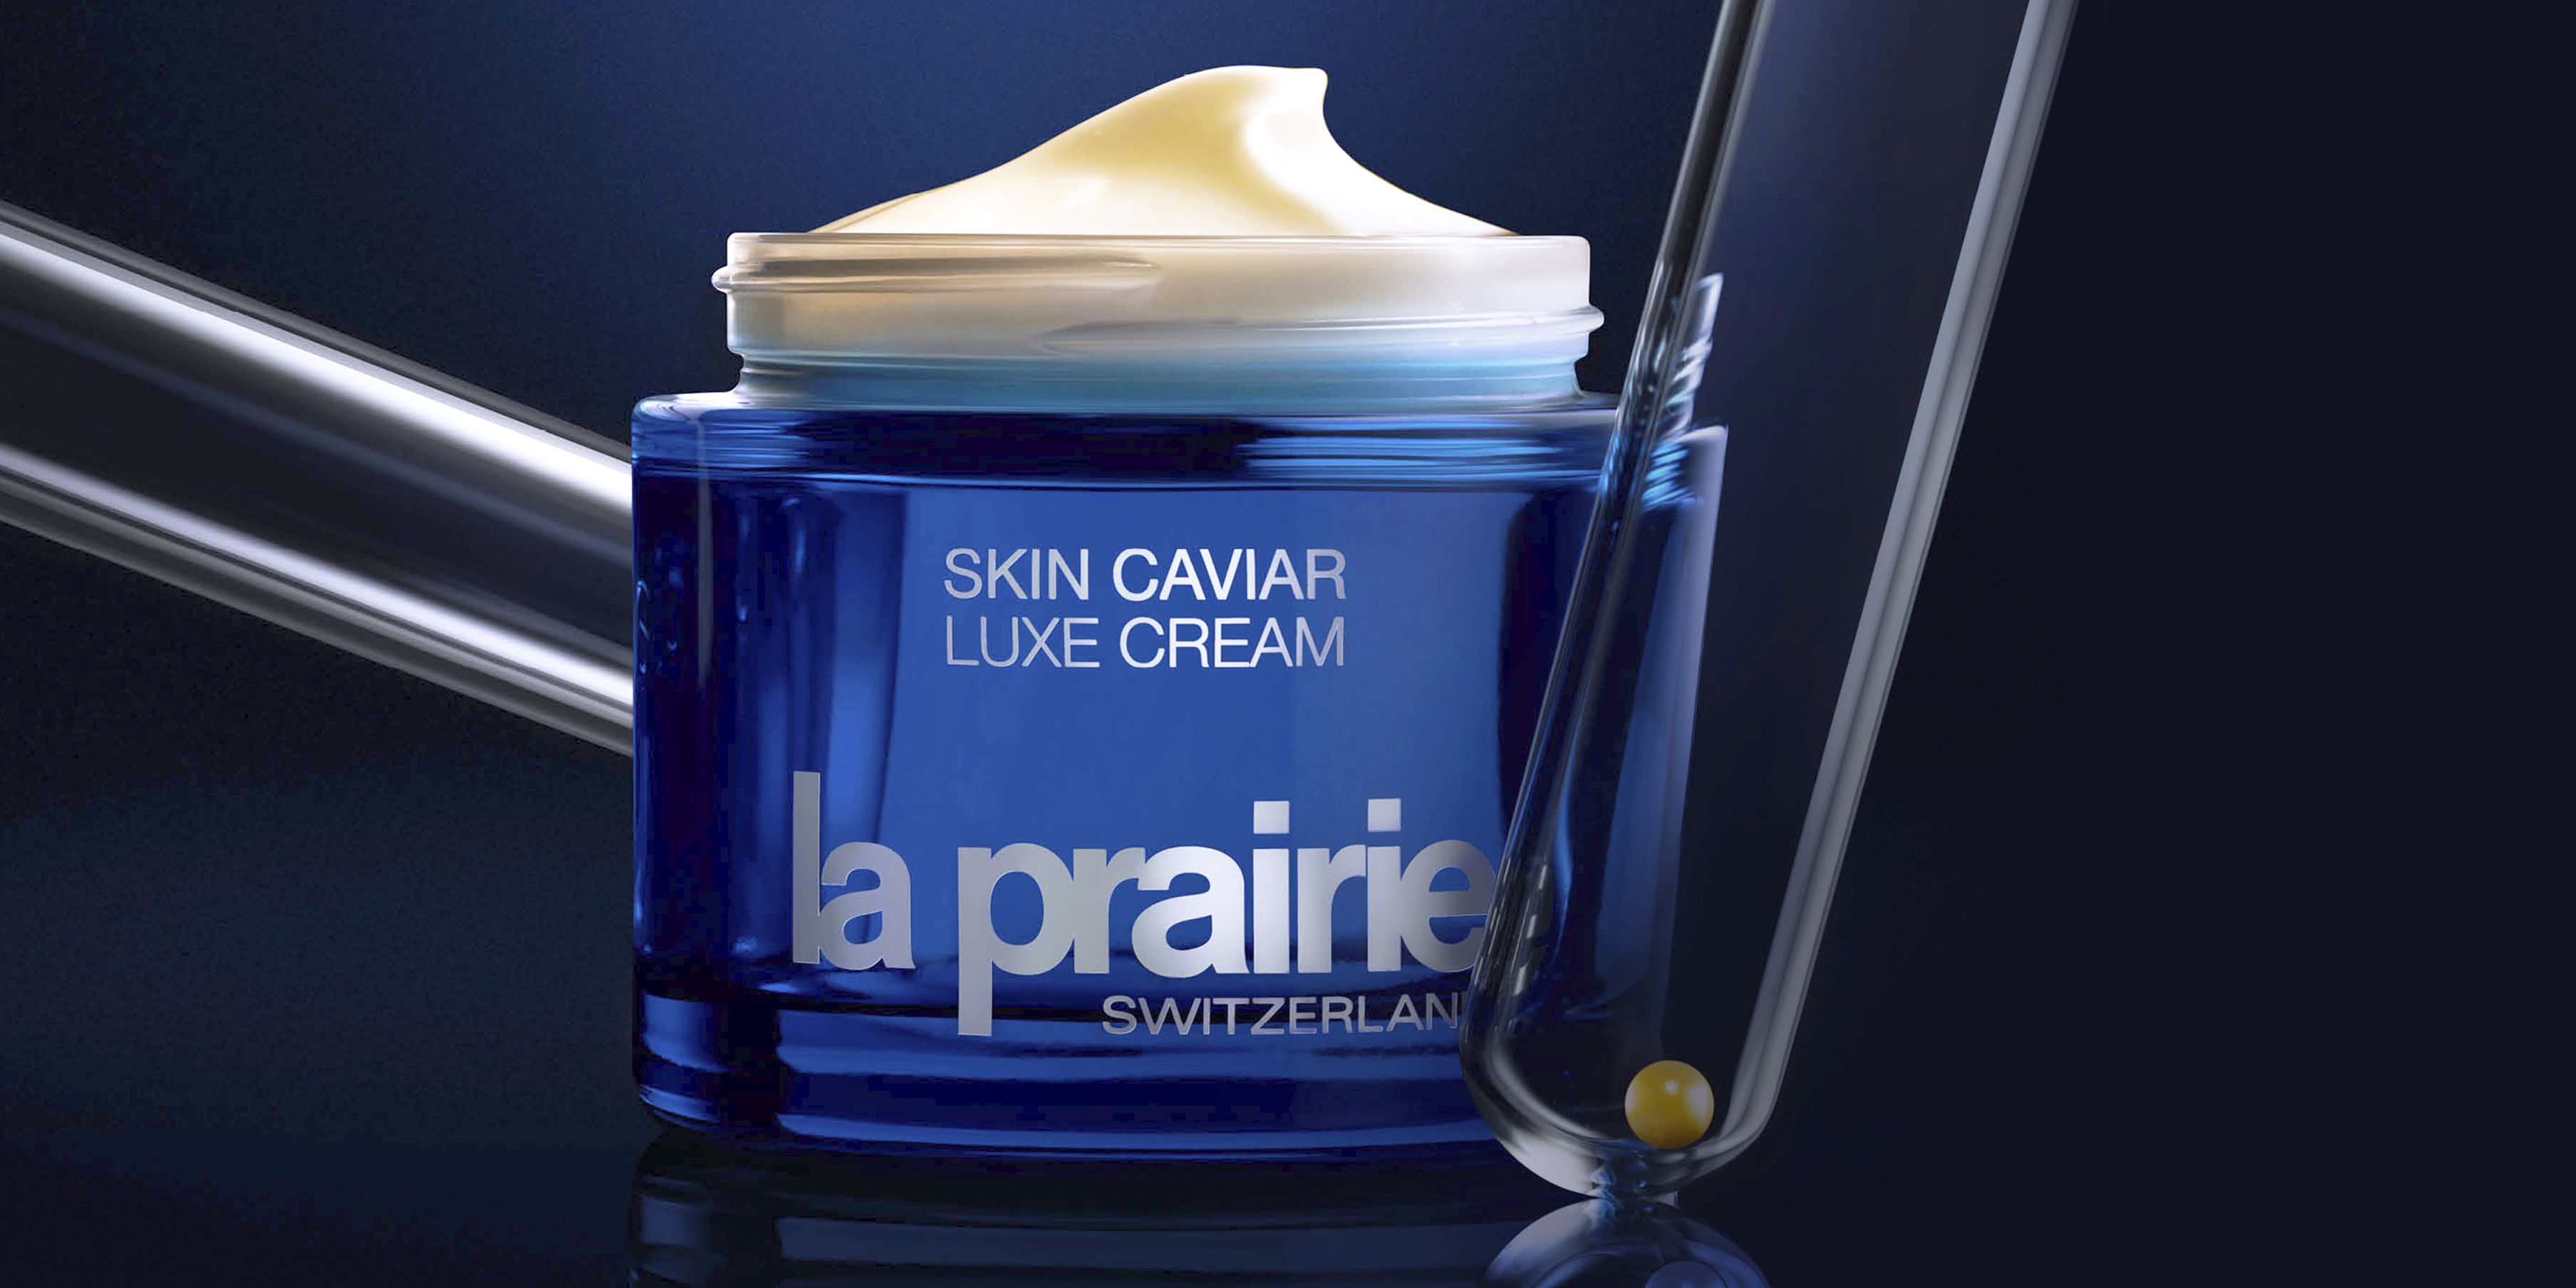 La Prairie Caviar Cream Luxe Review